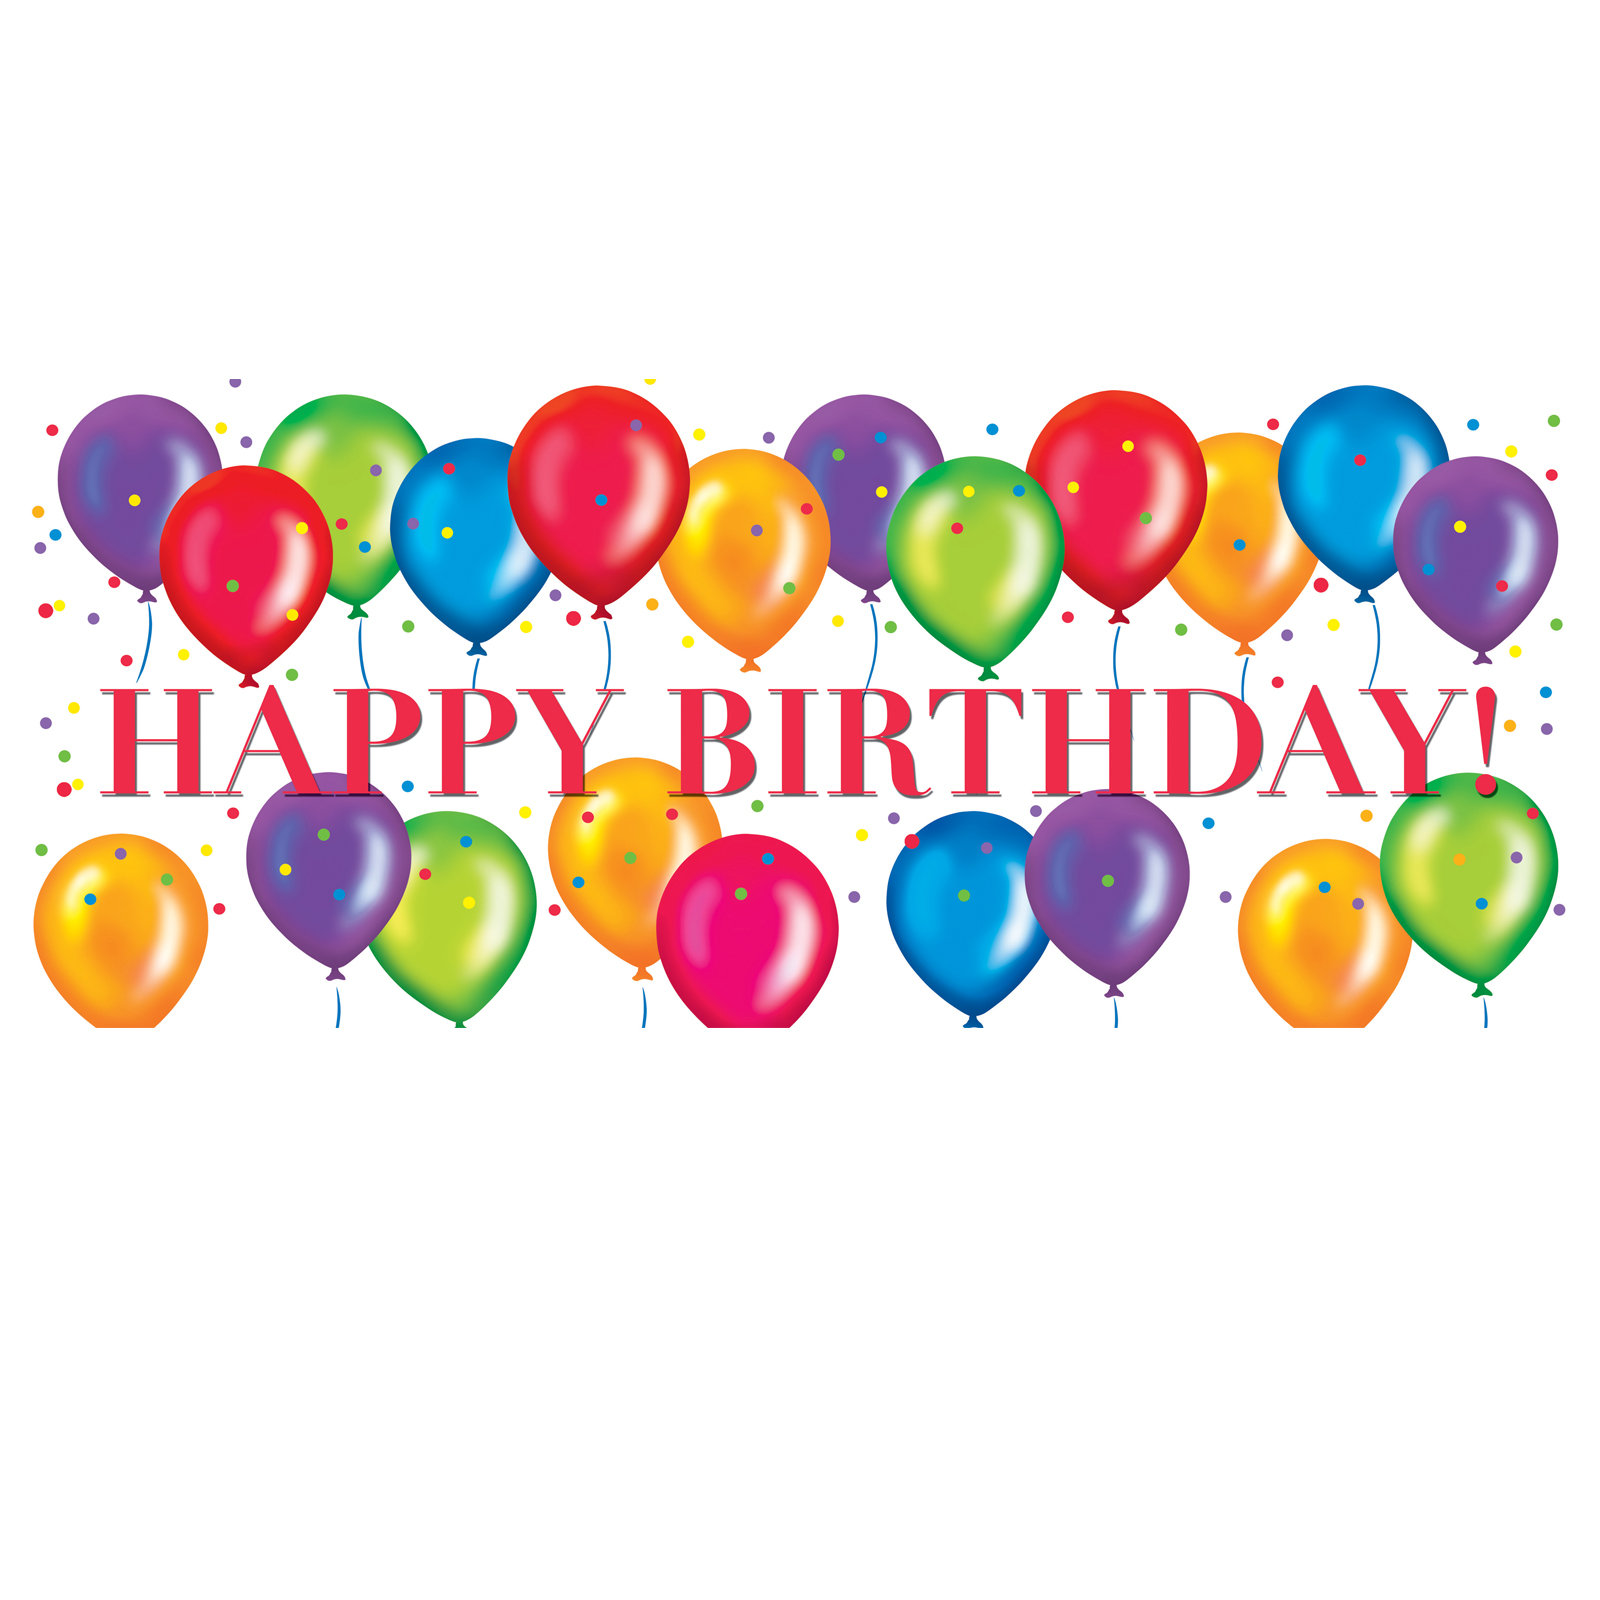 Clip Art Birthday Pictures Clip Art 90th birthday clip art free clipart best images download on